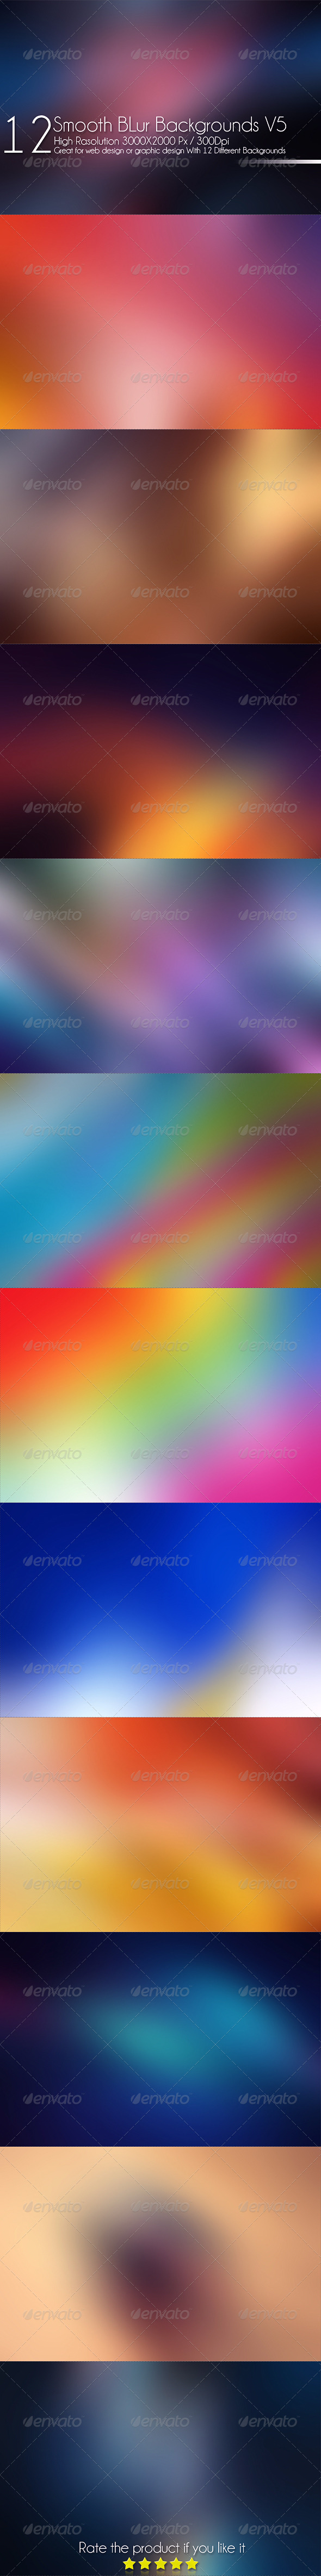 12 Smooth Blur Background V5 - Abstract Backgrounds